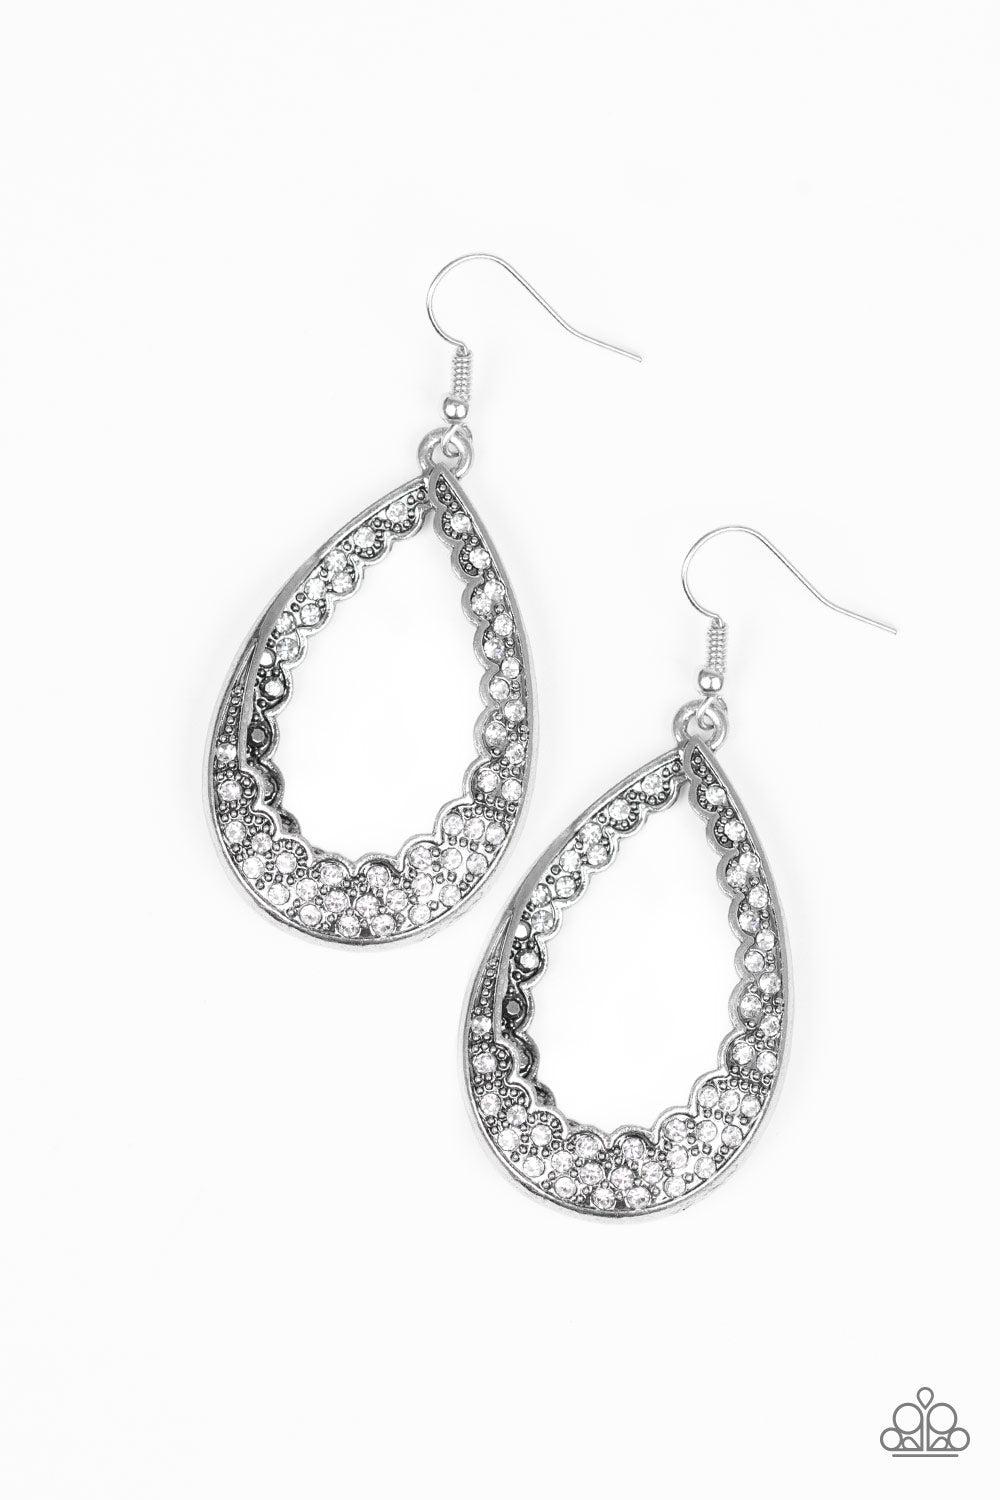 Paparazzi Accessories - Royal Treatment - White Earrings - JMJ Jewelry Collection